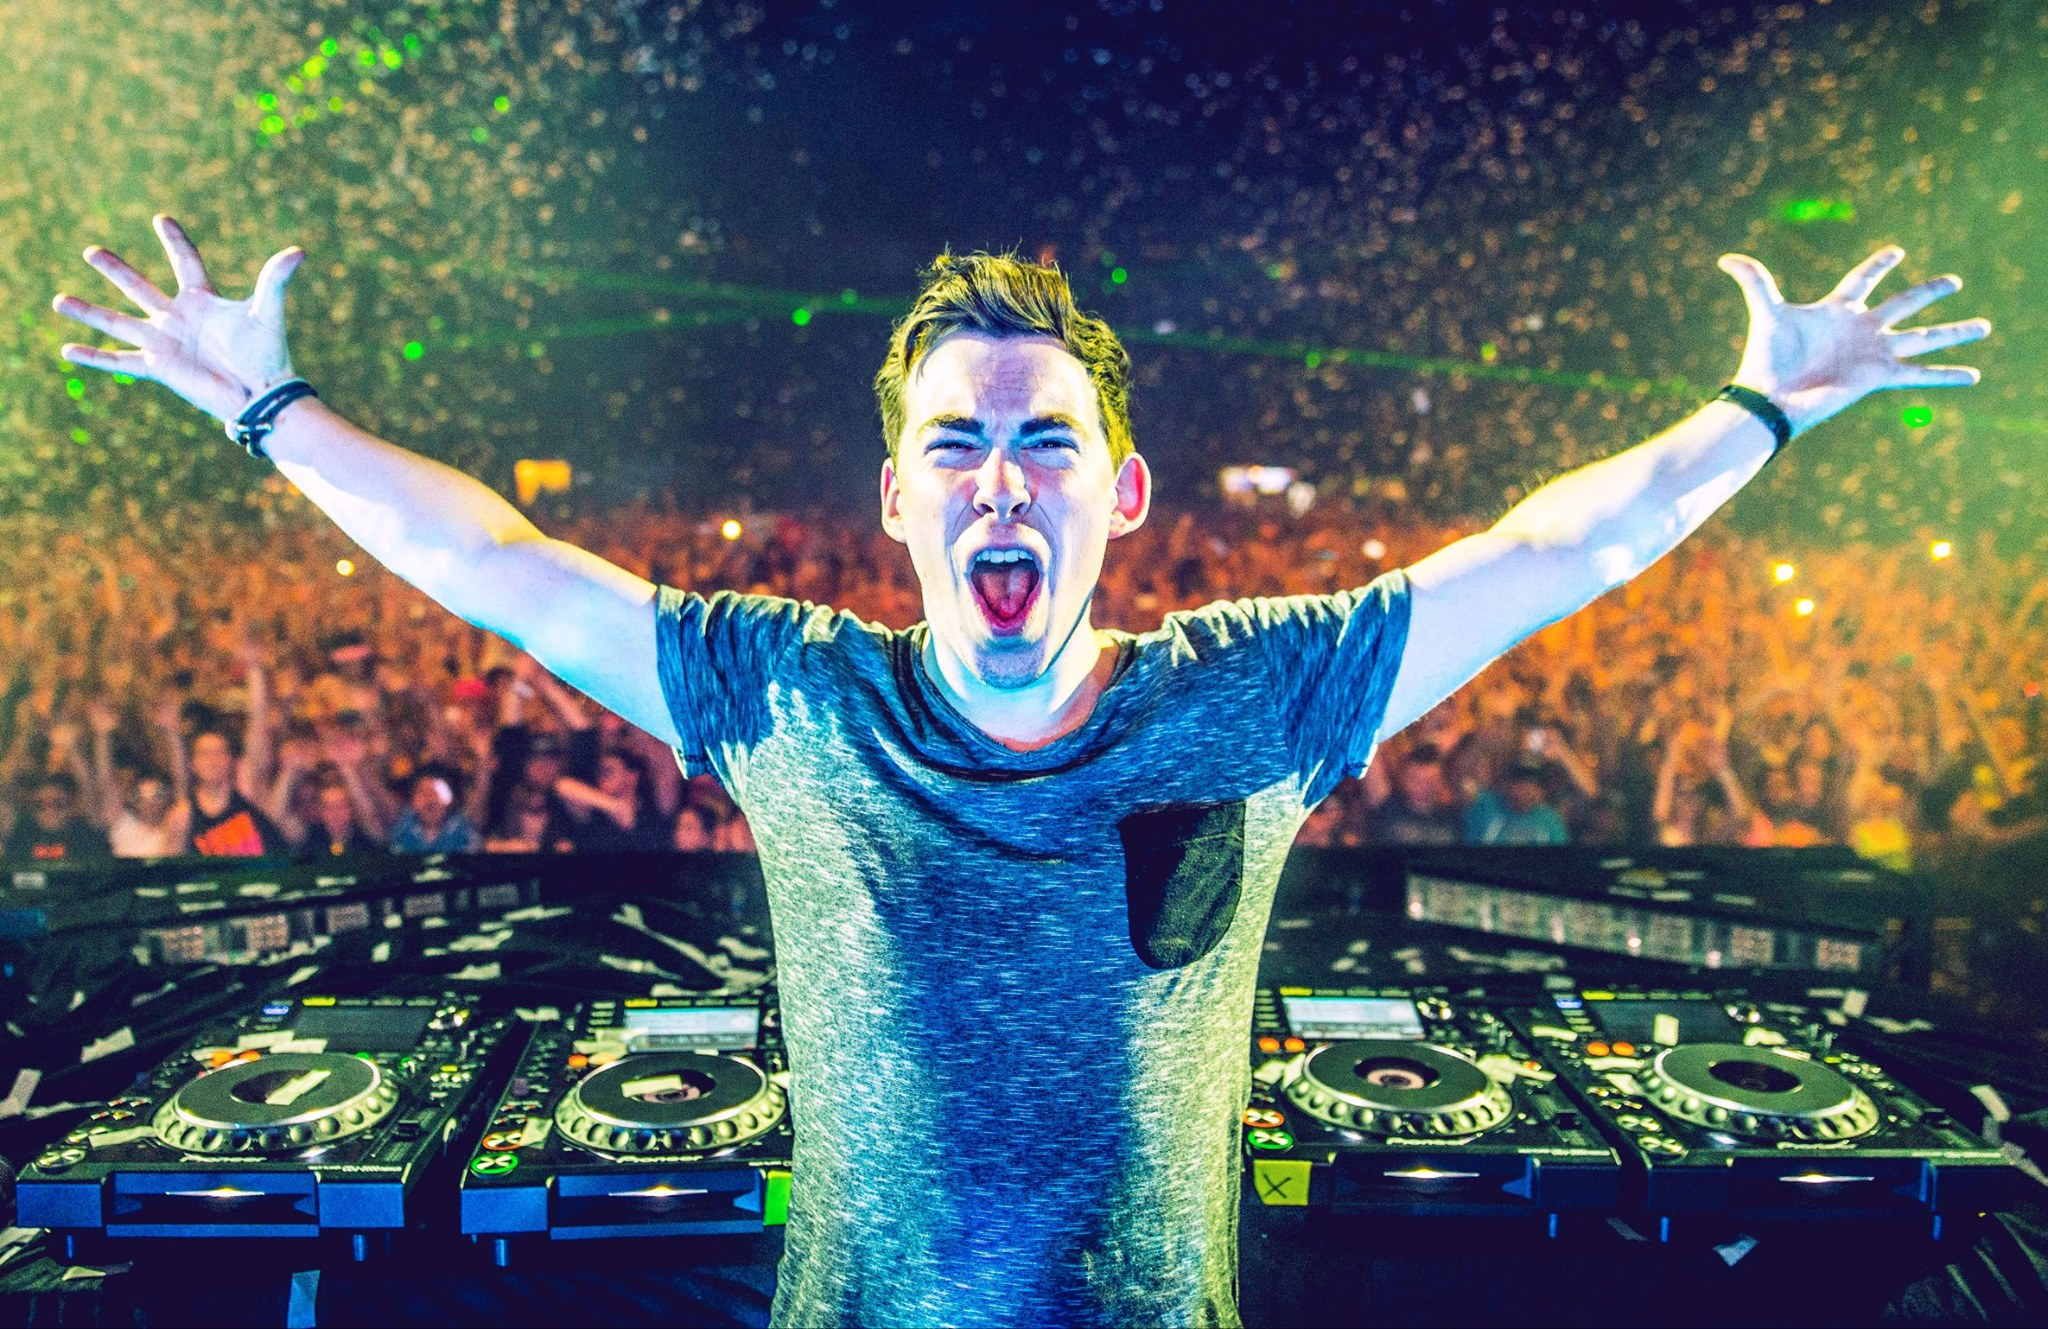 Hardwell Makes Emotional Appearance on Stage During ADE